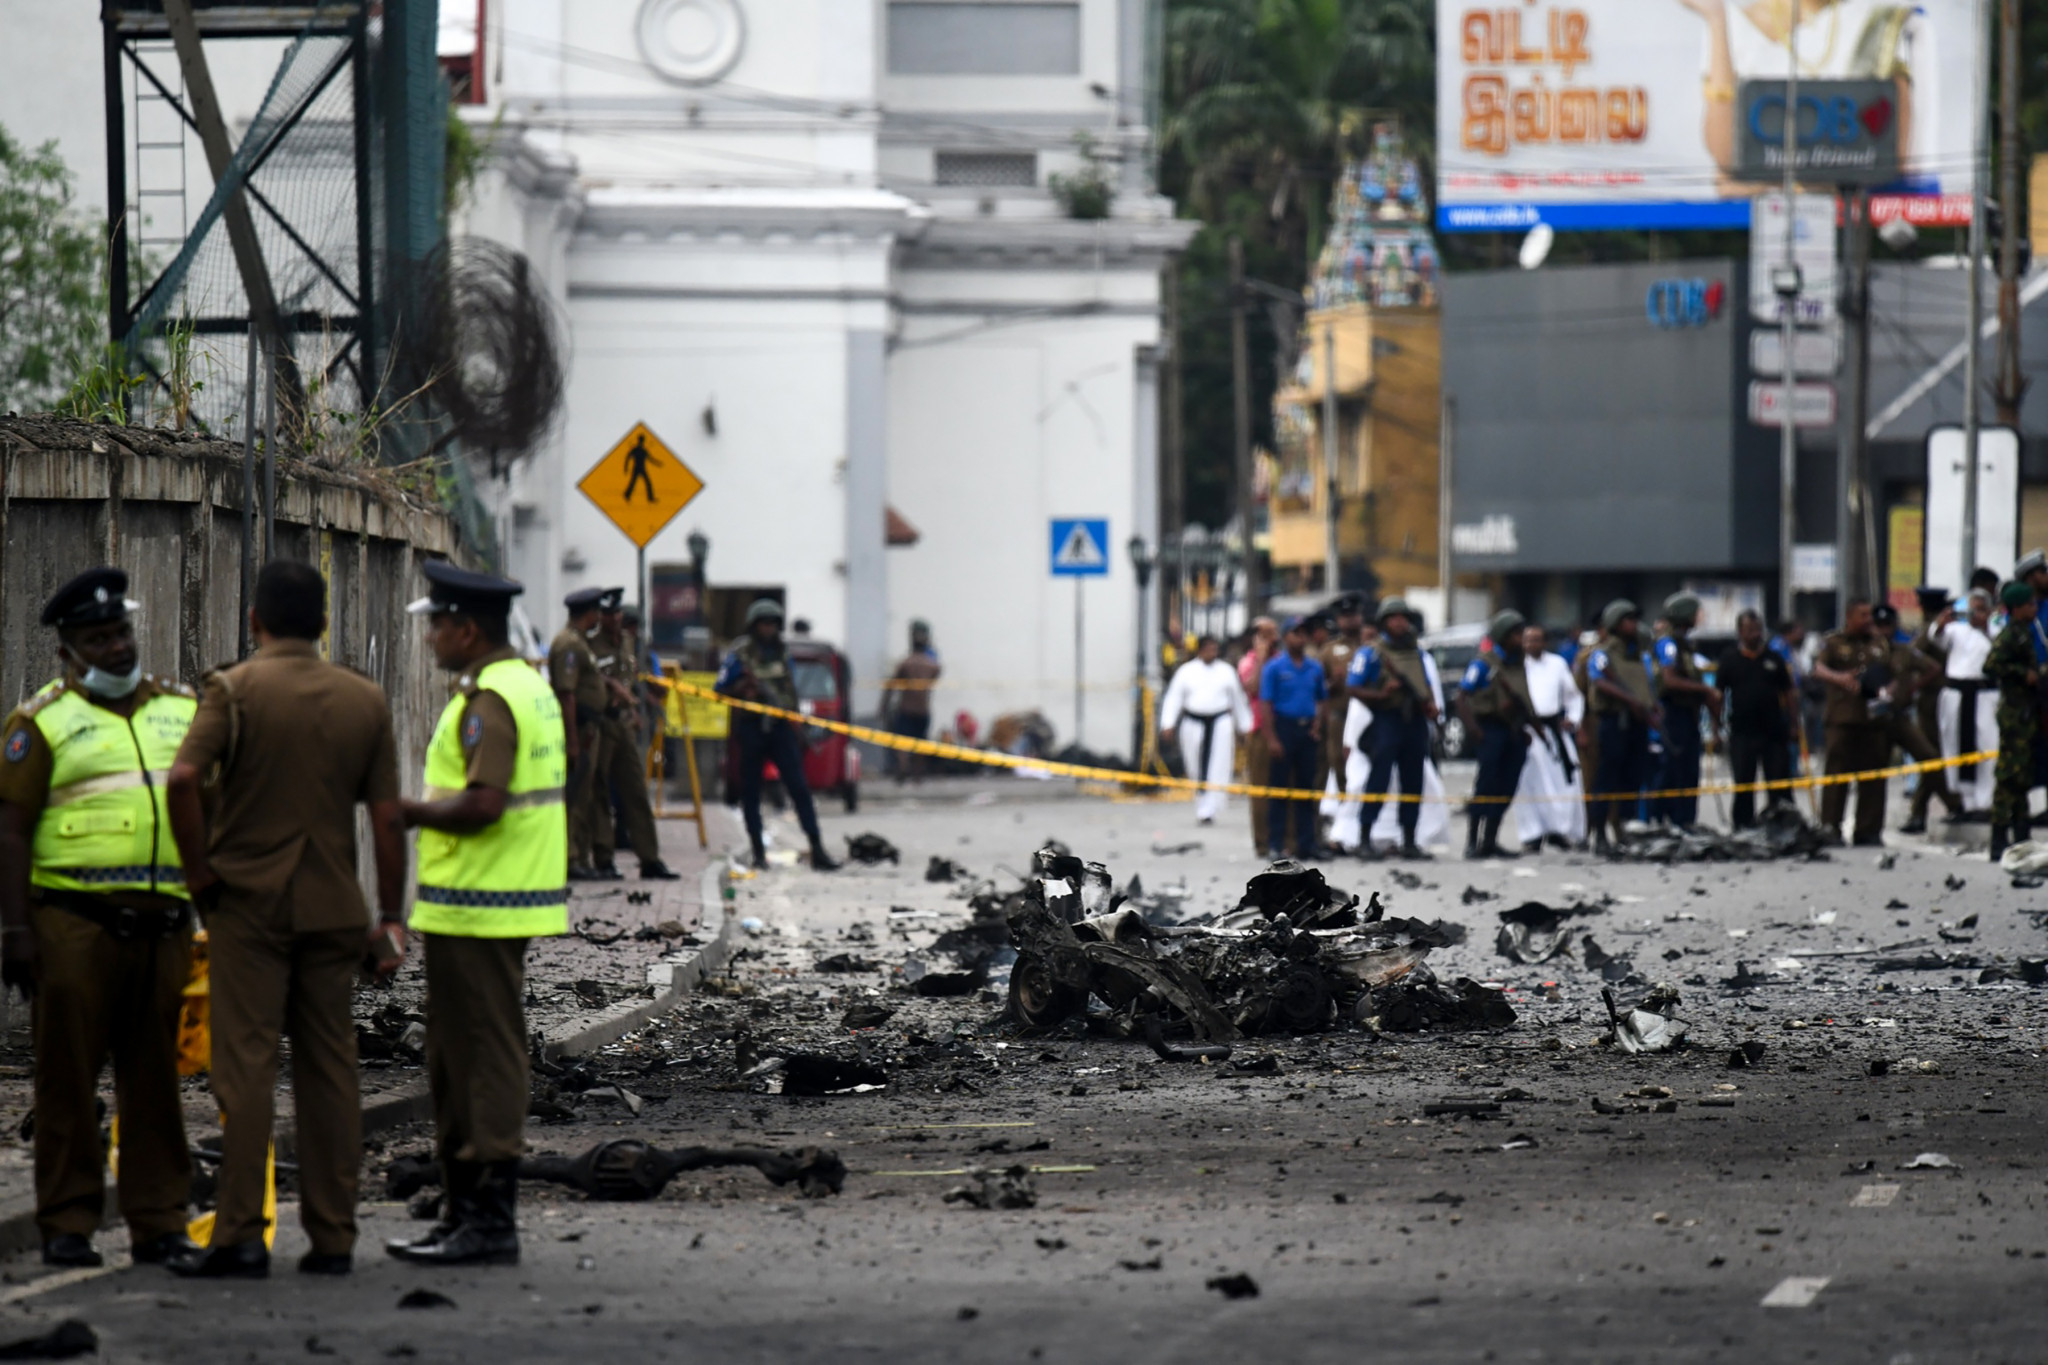 Olympic Council of Asia President expresses shock and grief over Sri Lanka attacks